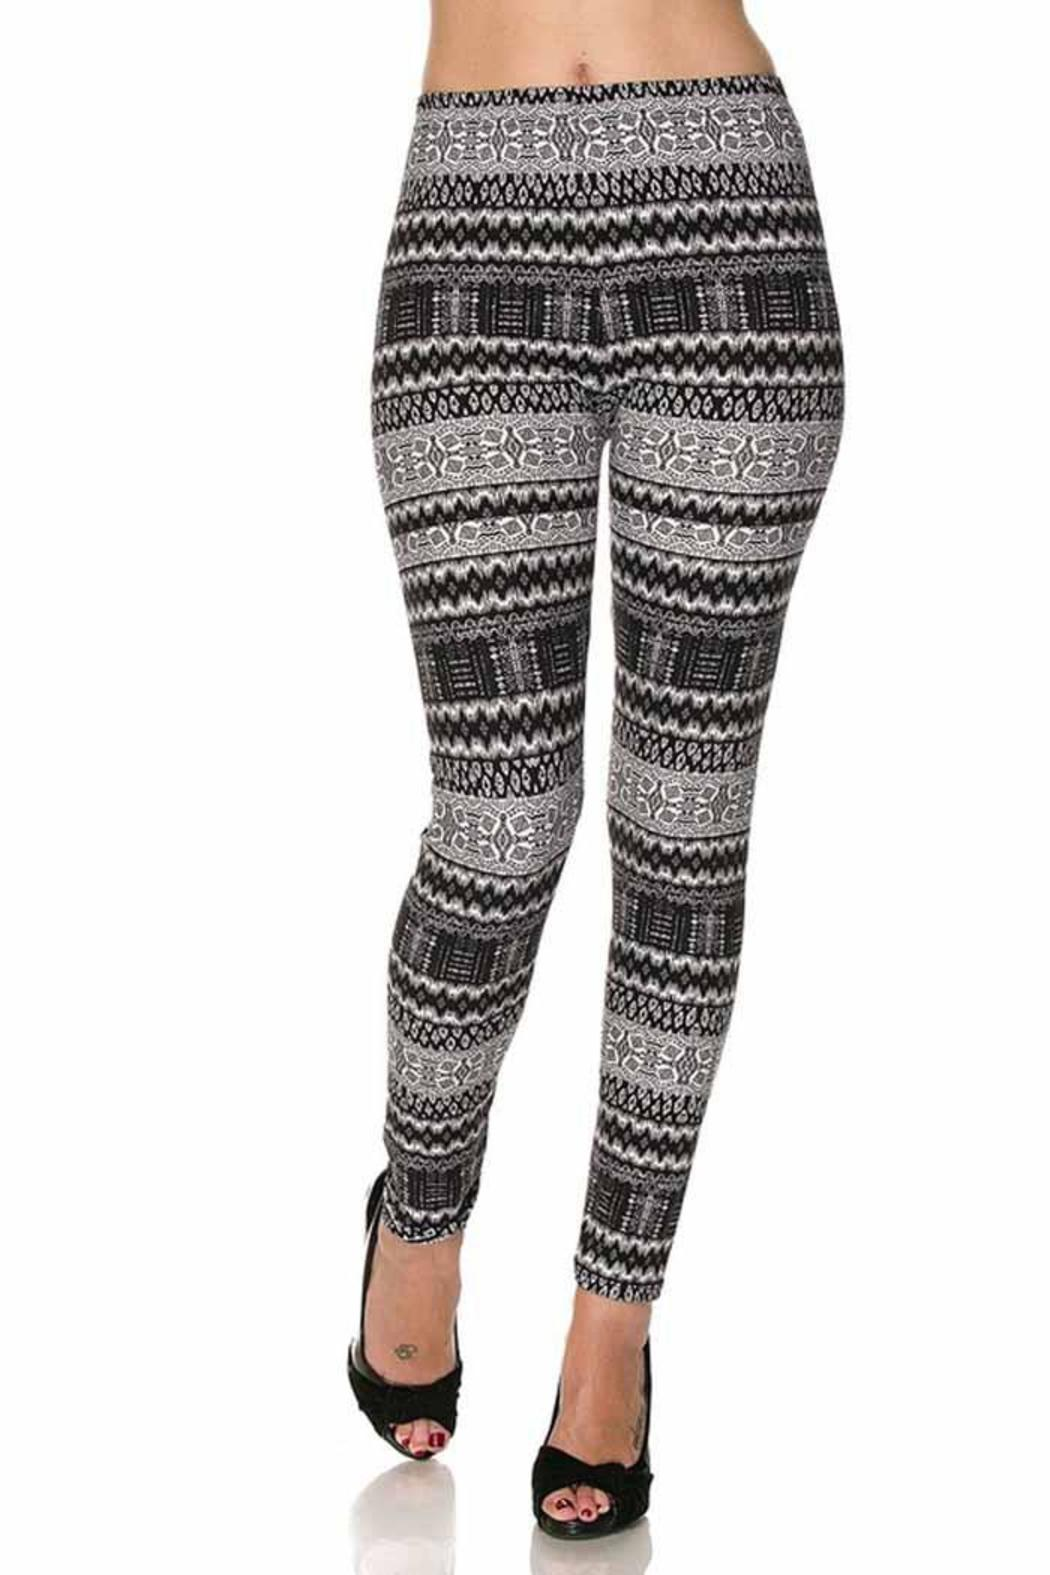 044d4d5a41052c New Mix Abstract Aztec Legging from New York by Avenue A — Shoptiques